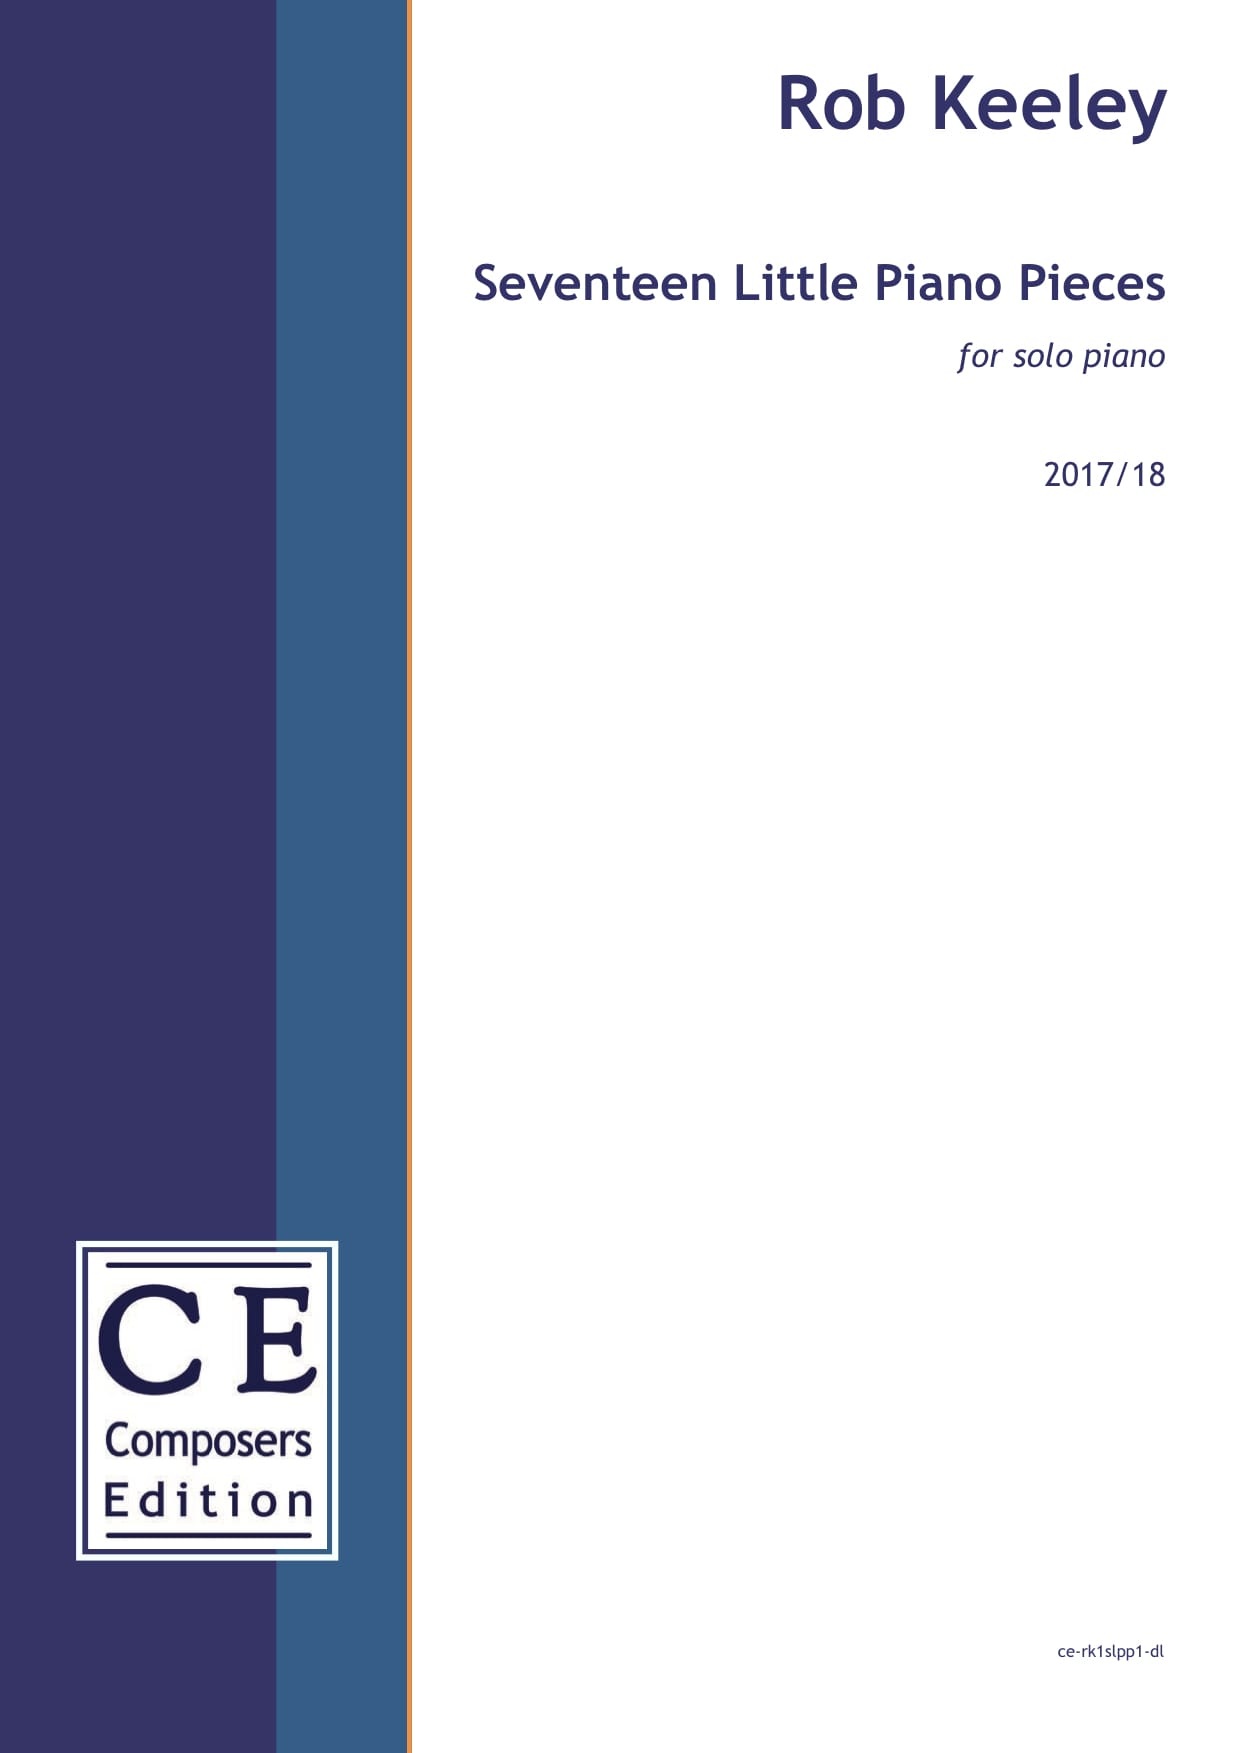 Rob Keeley: Seventeen Little Piano Pieces for solo piano